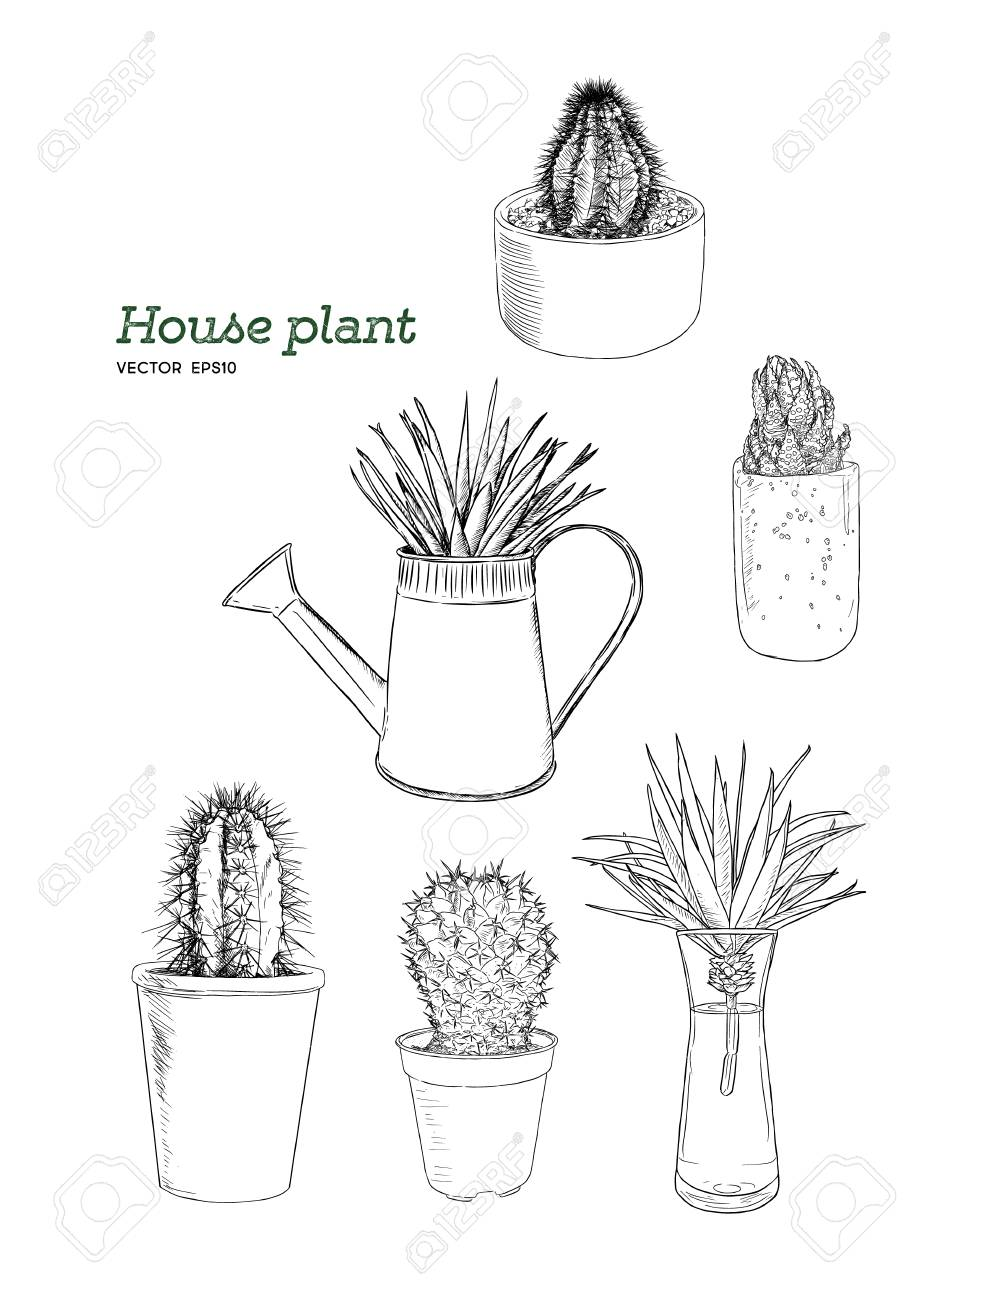 Set Of House Plant In Pot Hand Draw Sketch Vector Royalty Free Cliparts Vectors And Stock Illustration Image 92060104